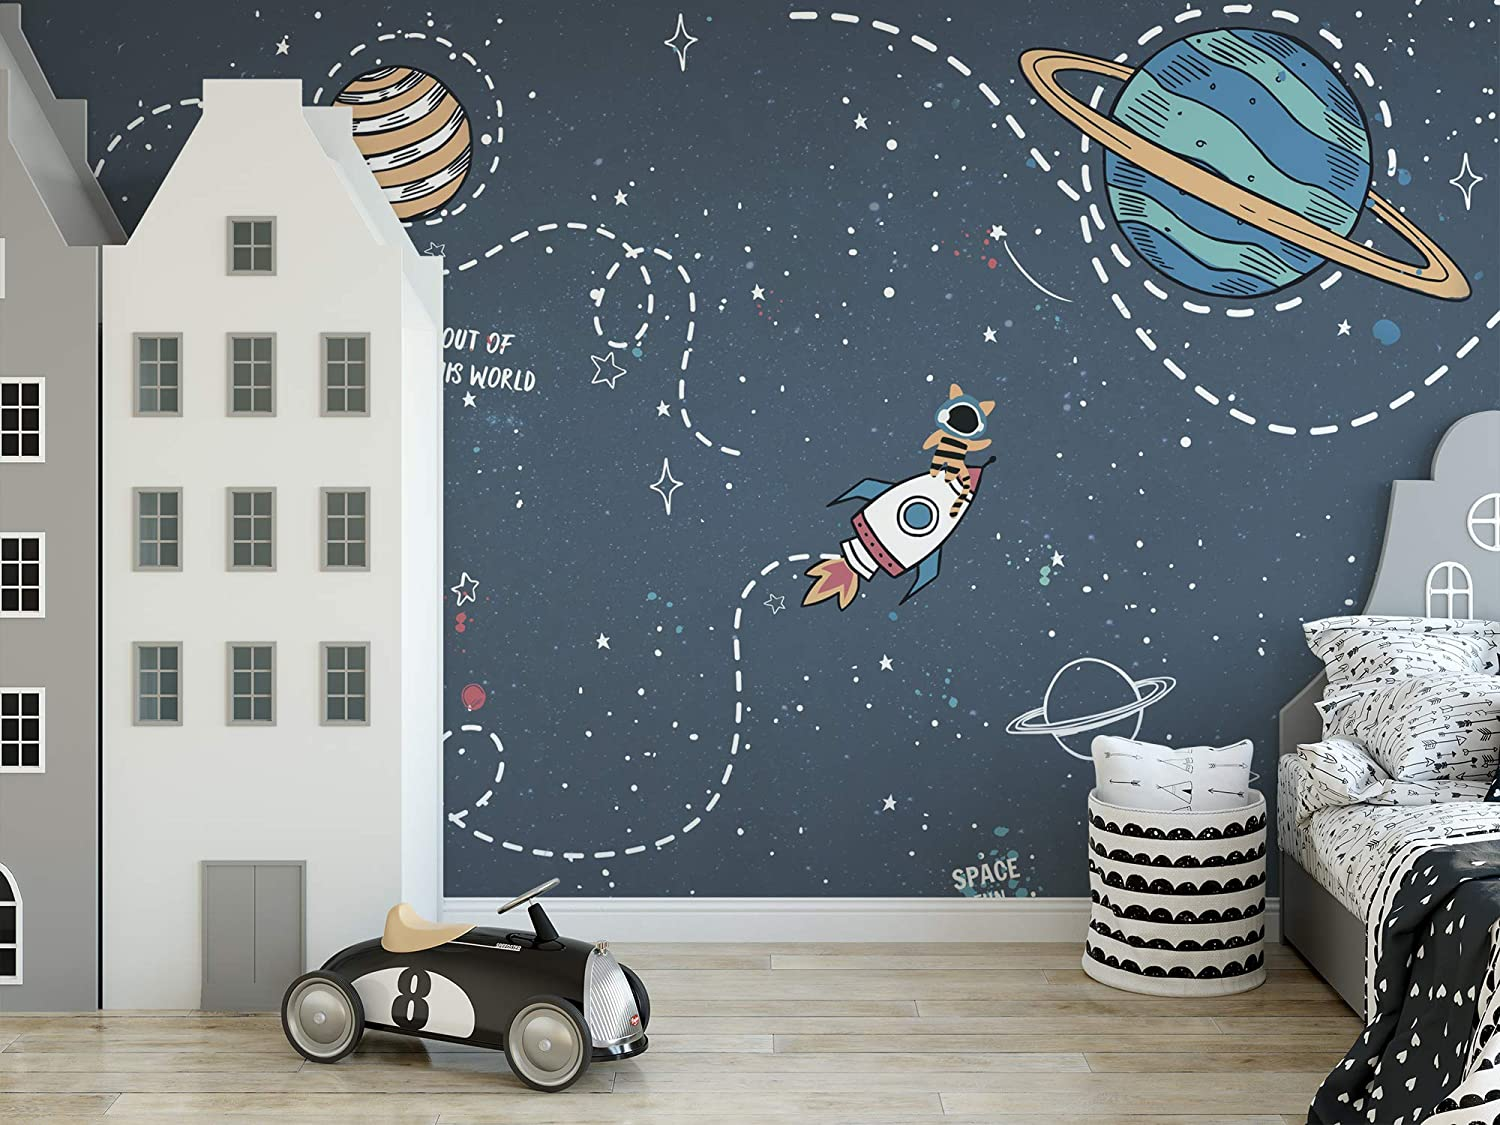 stickers-wall-kids-room 10 Cute Ways to Use Removable Wallpaper for Your Kid's Bedroom